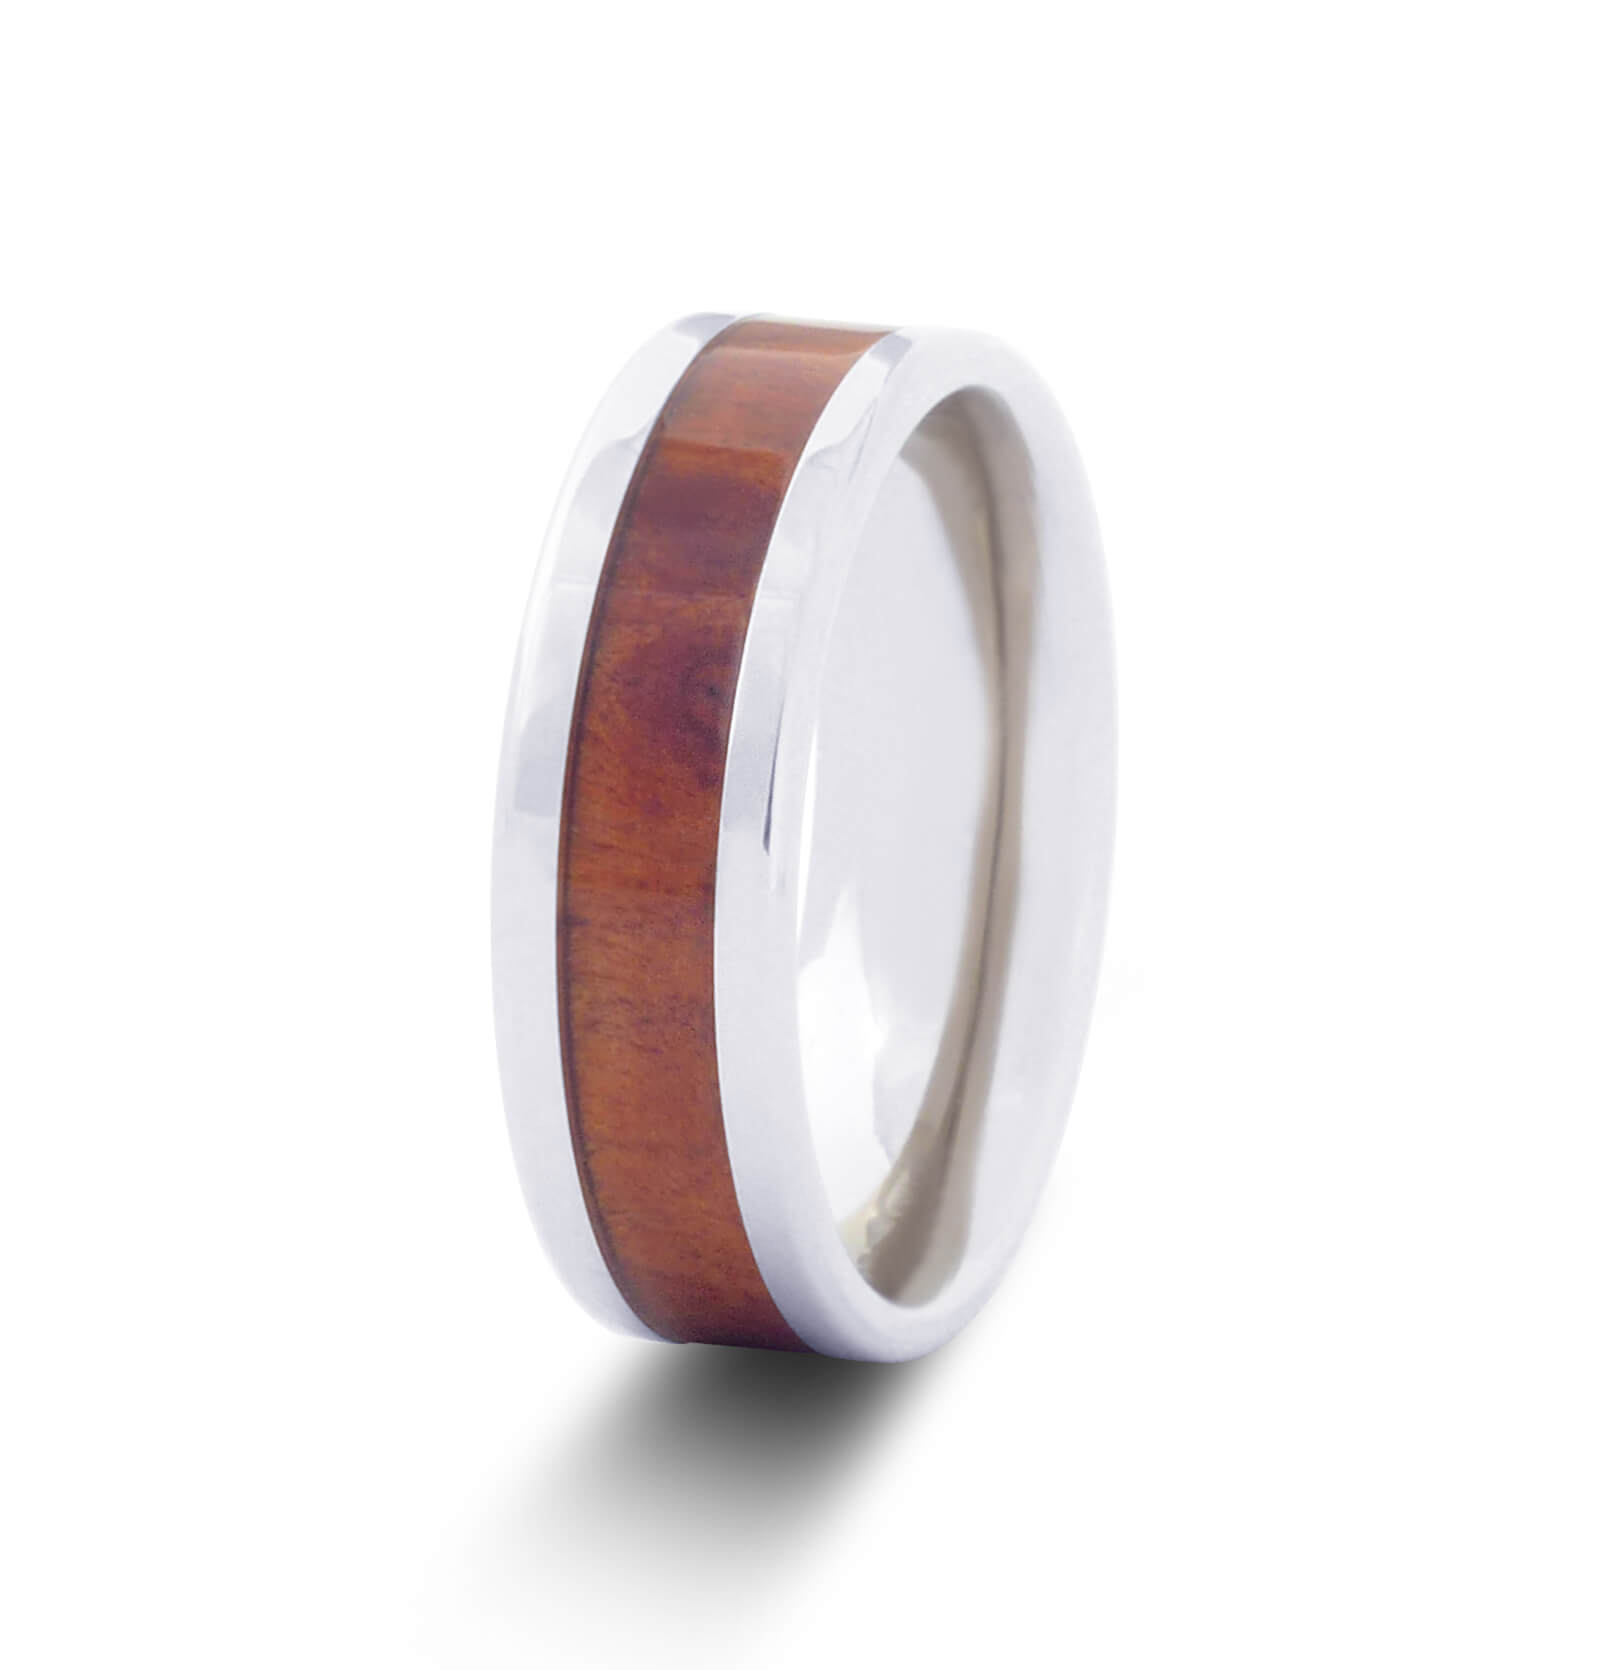 koa-wood-rings-1.jpg